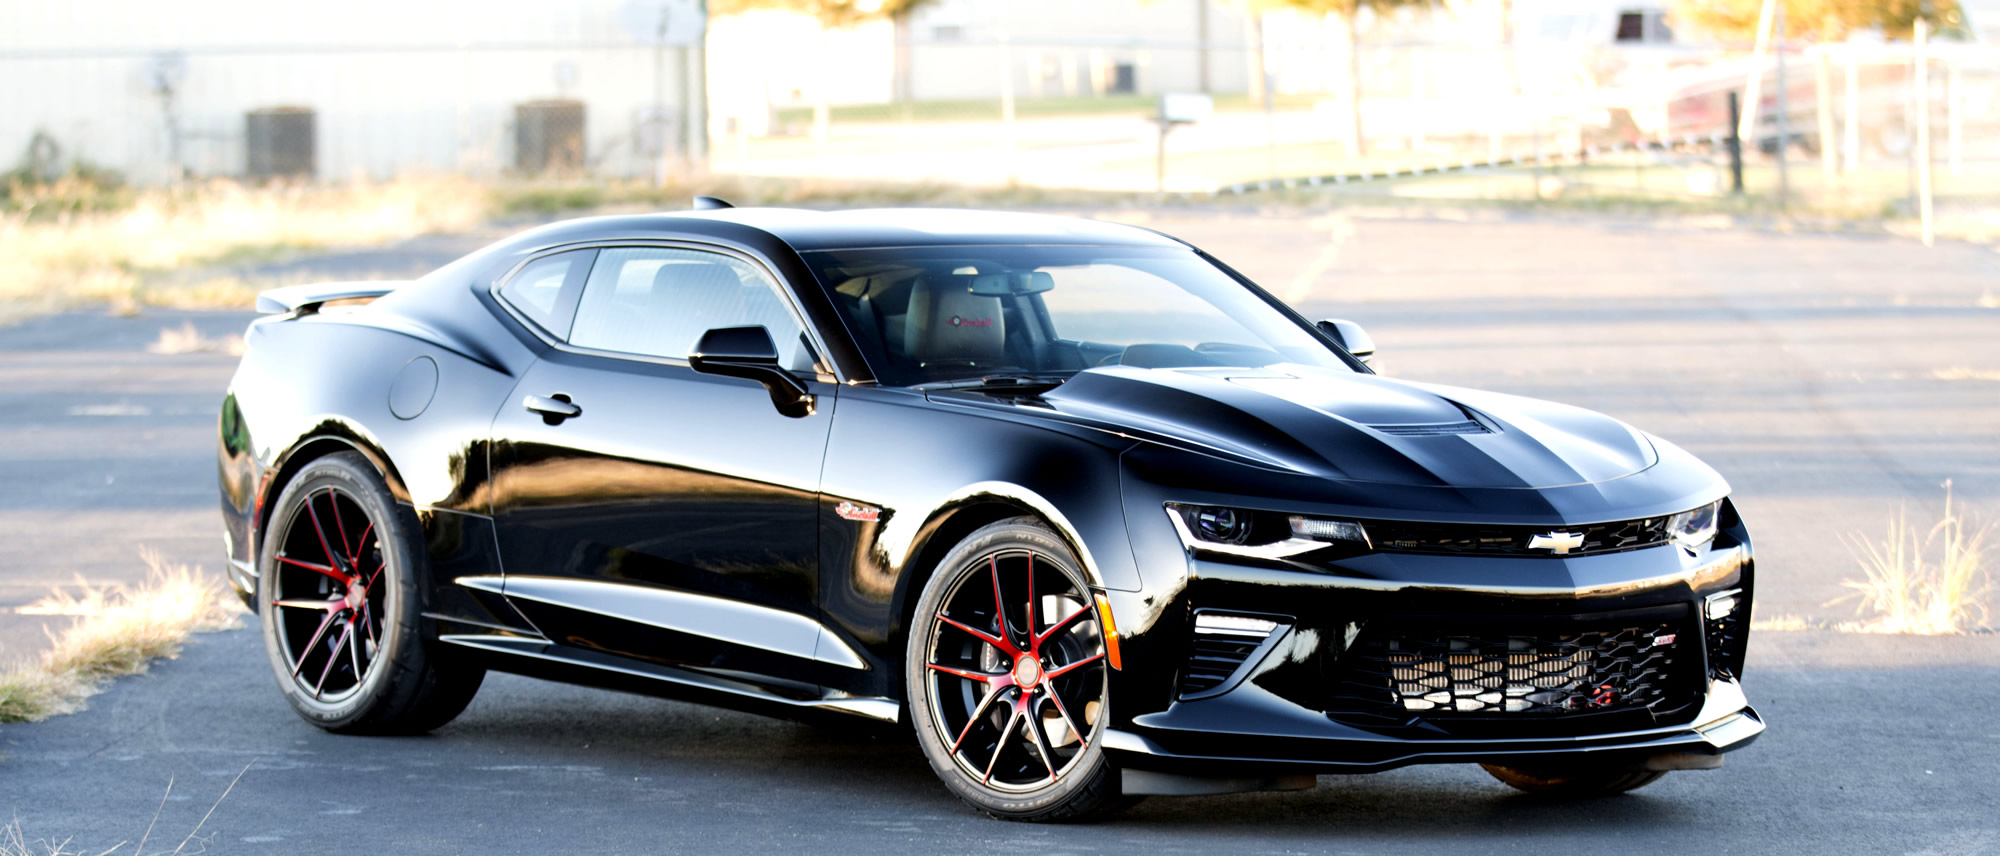 900 Horsepower Camaro Available Under $90K | Fireball ...